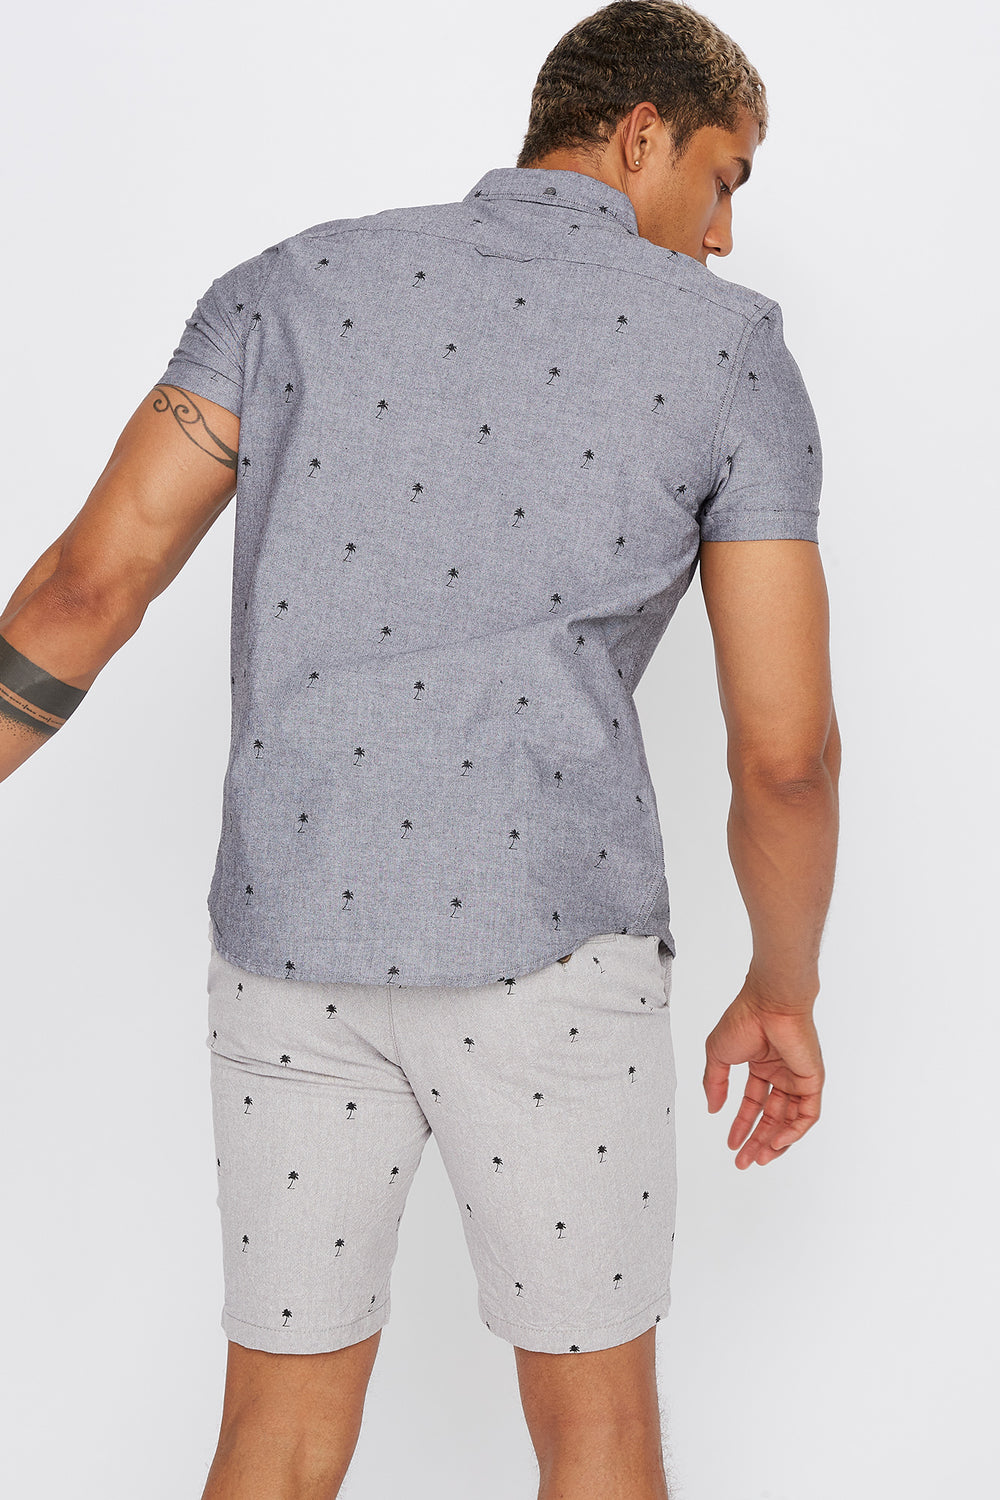 Printed Button-Up Short Sleeve Shirt Heather Grey